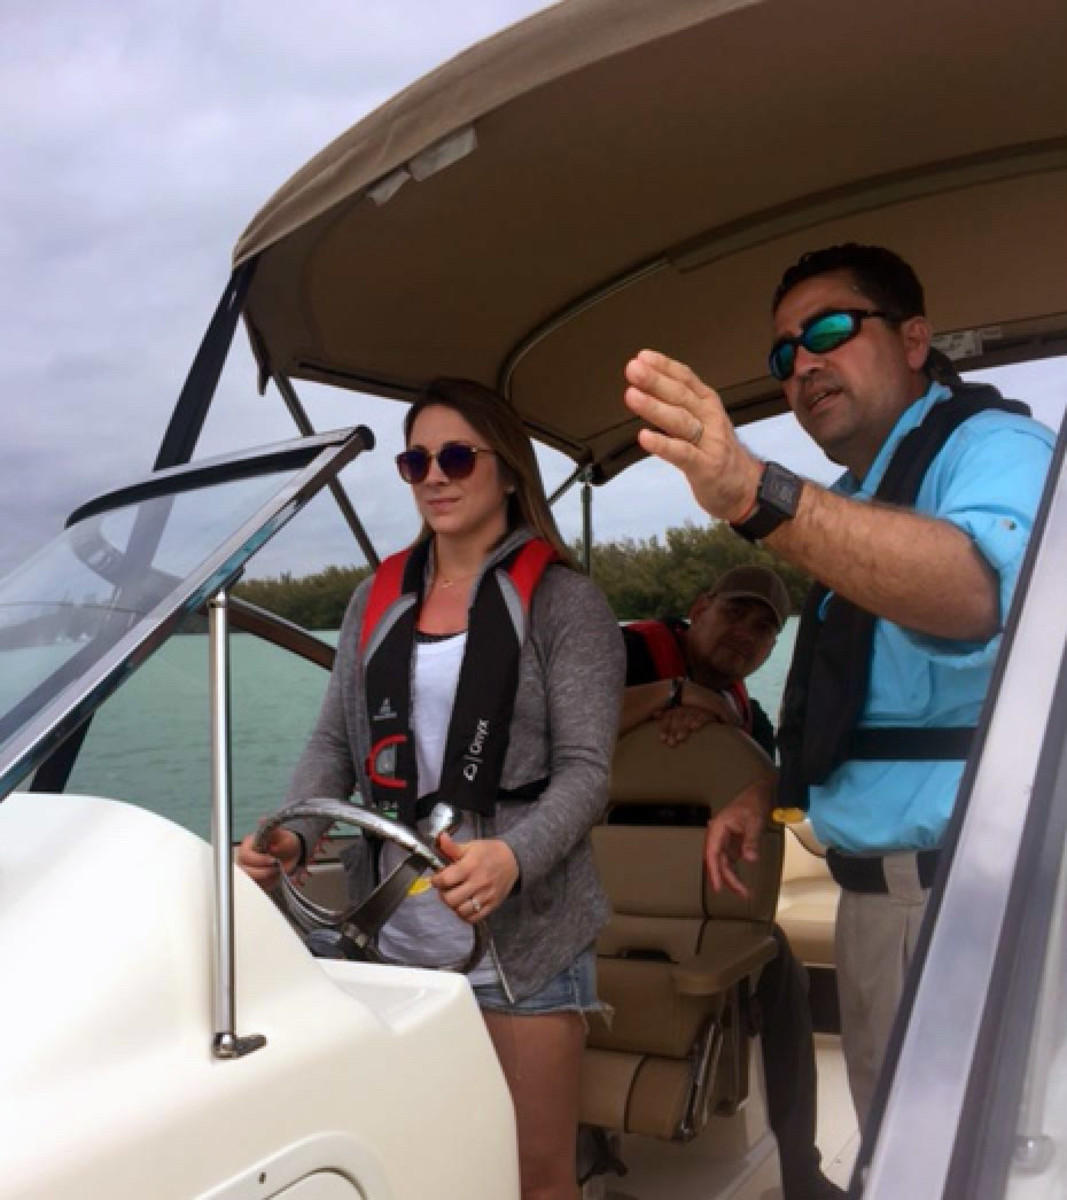 All classes will provide hands-on learning with on-board instructors.